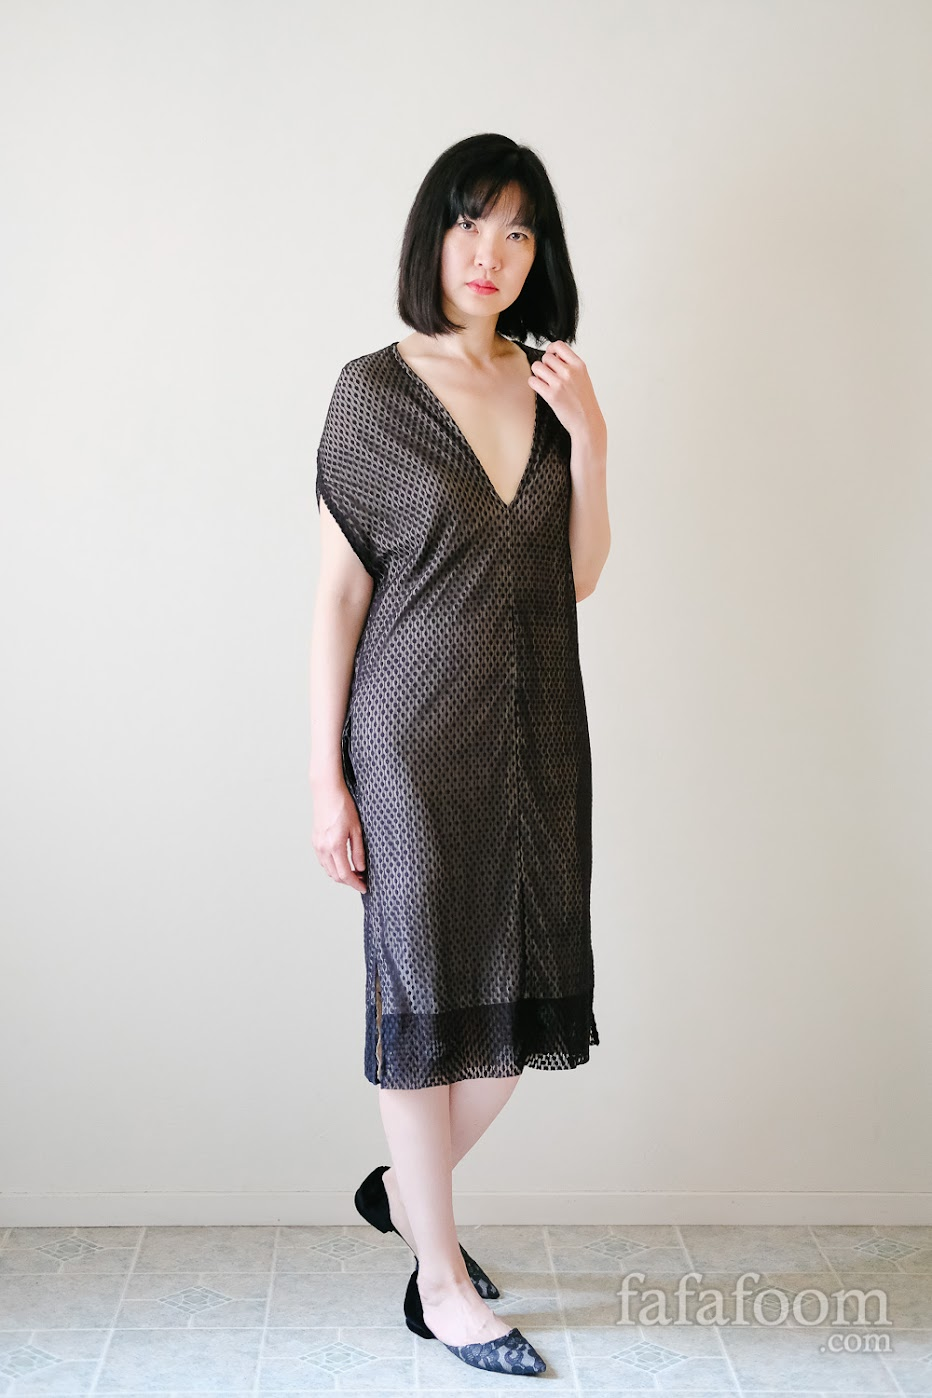 Result: Reversible Dress with Pockets - DIY Fashion Garments | fafafoom.com